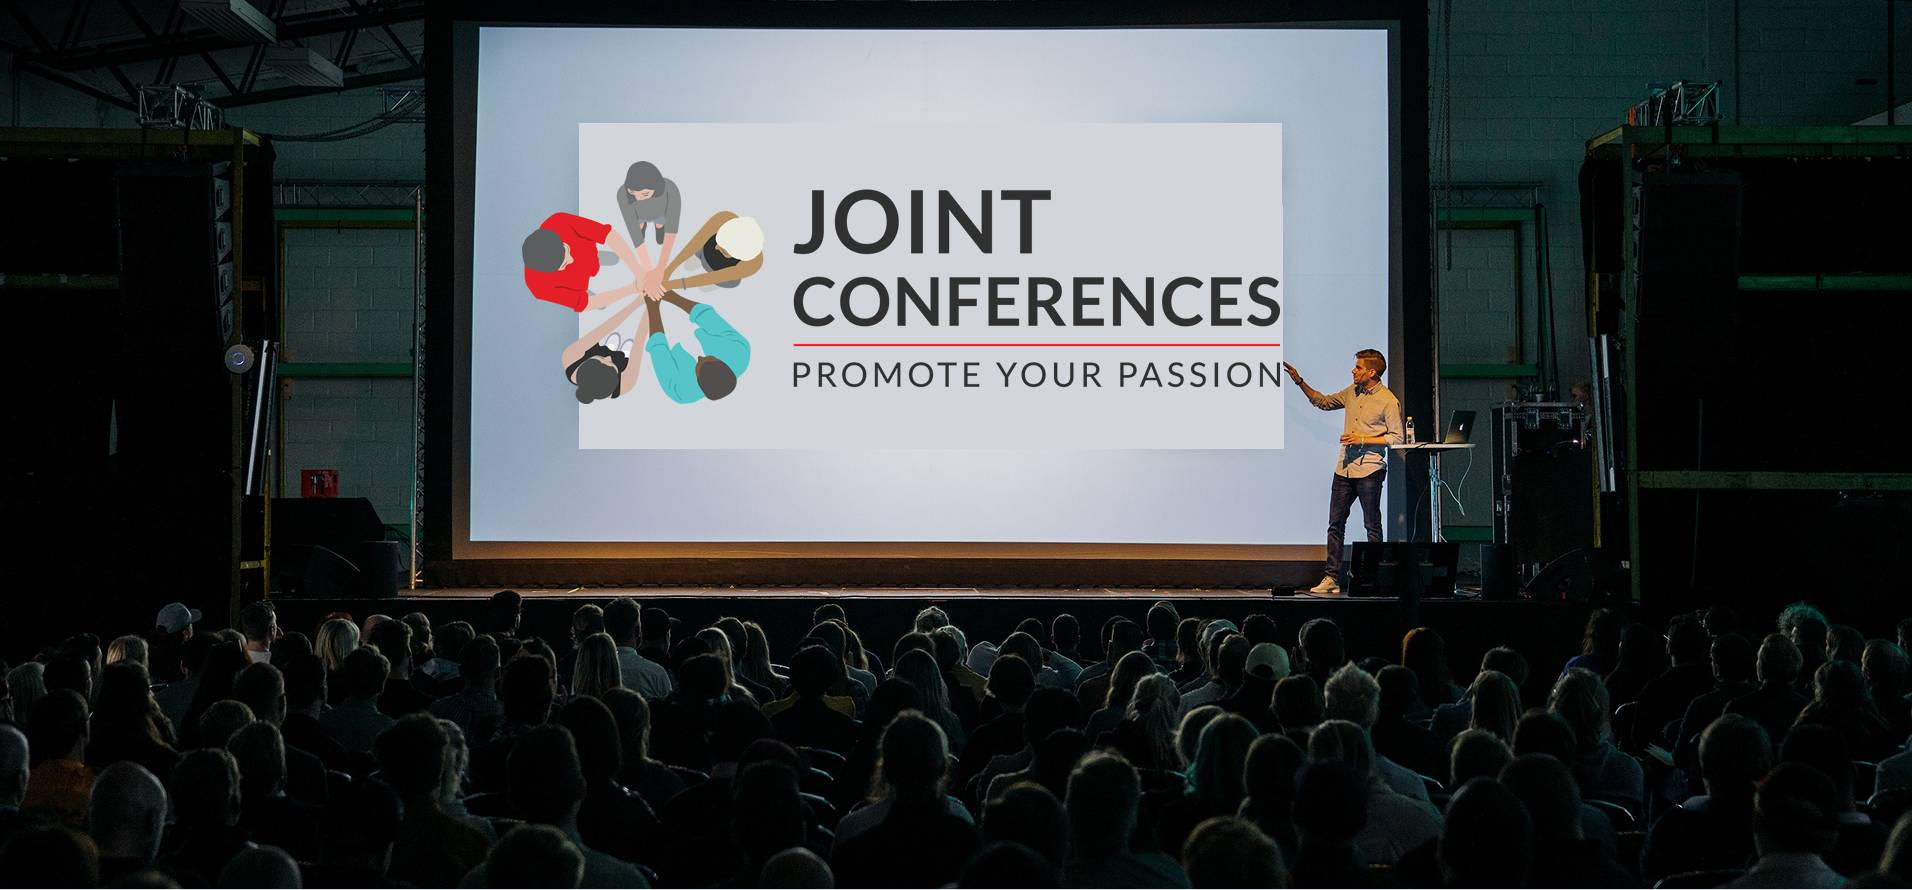 Promote Your Passion with Joint Conferences